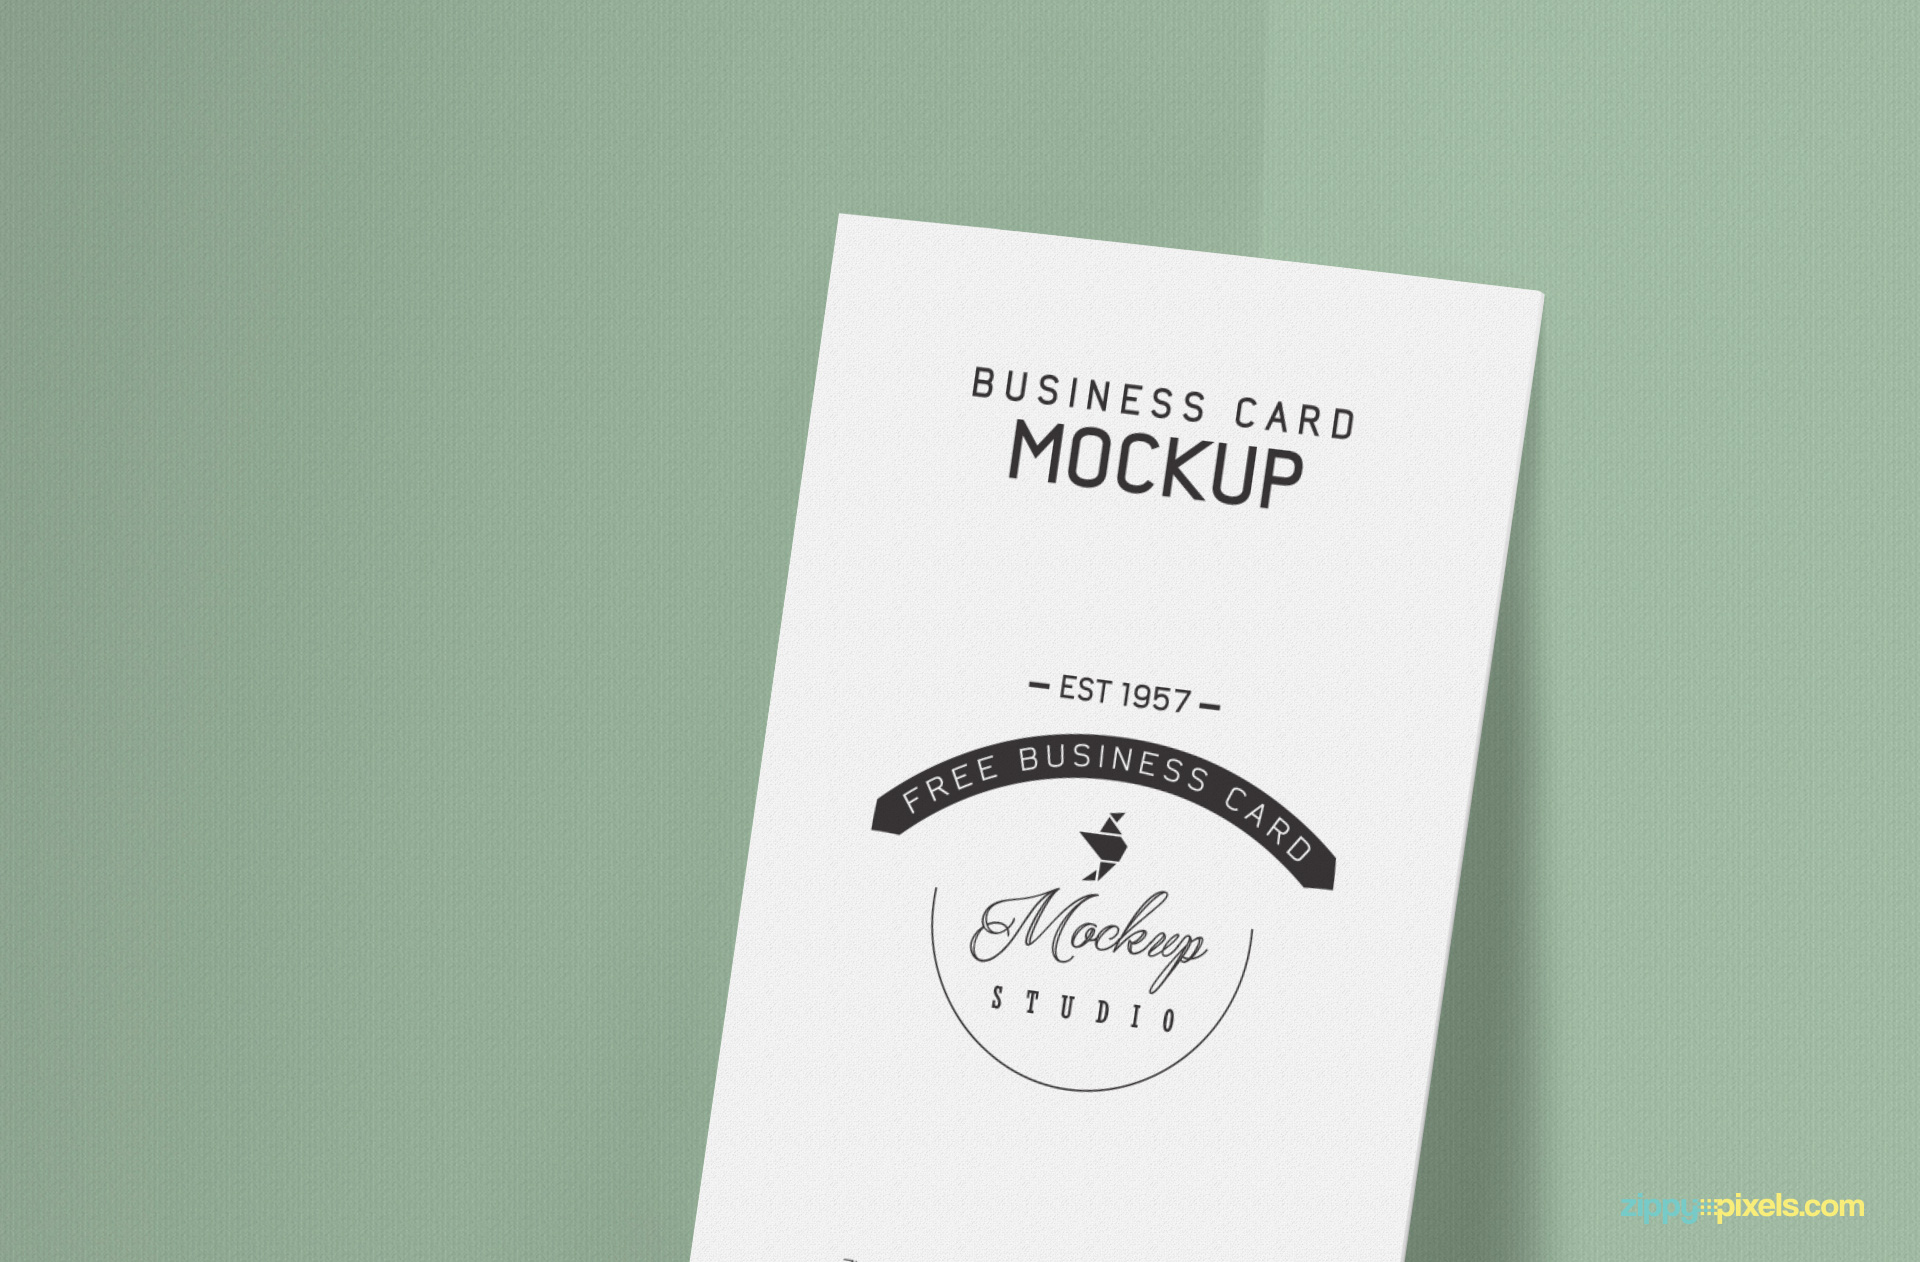 Free business card mockup for your card design presentations